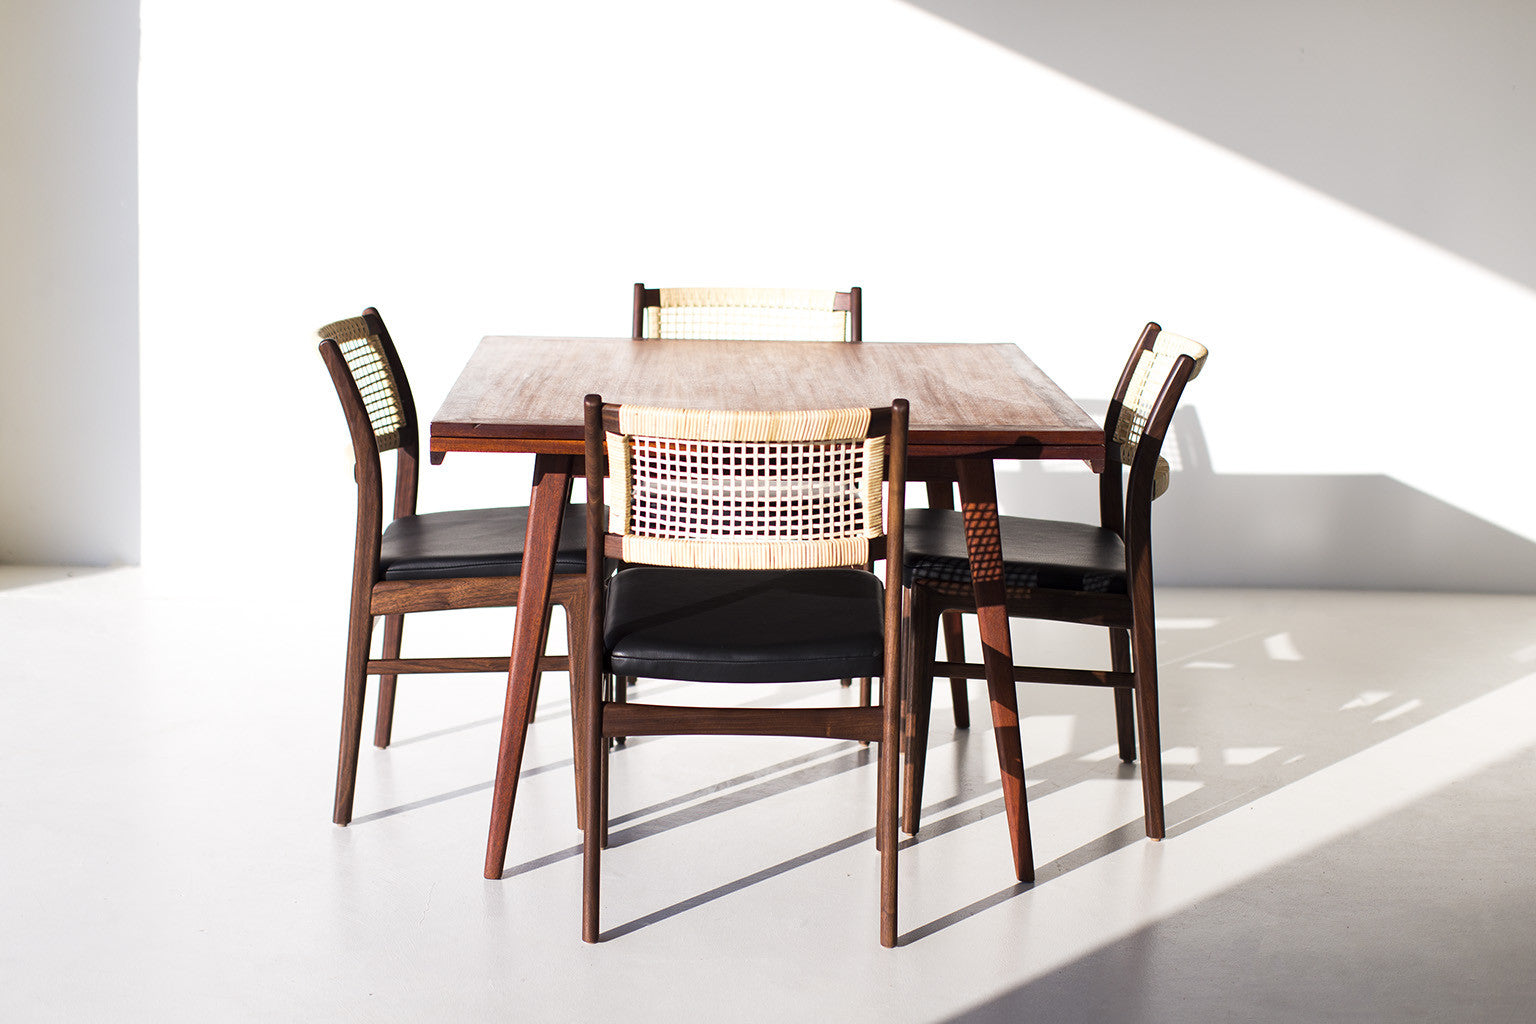 sylve-stenquist-dining-chairs-tribute-furniture-T-1002-08